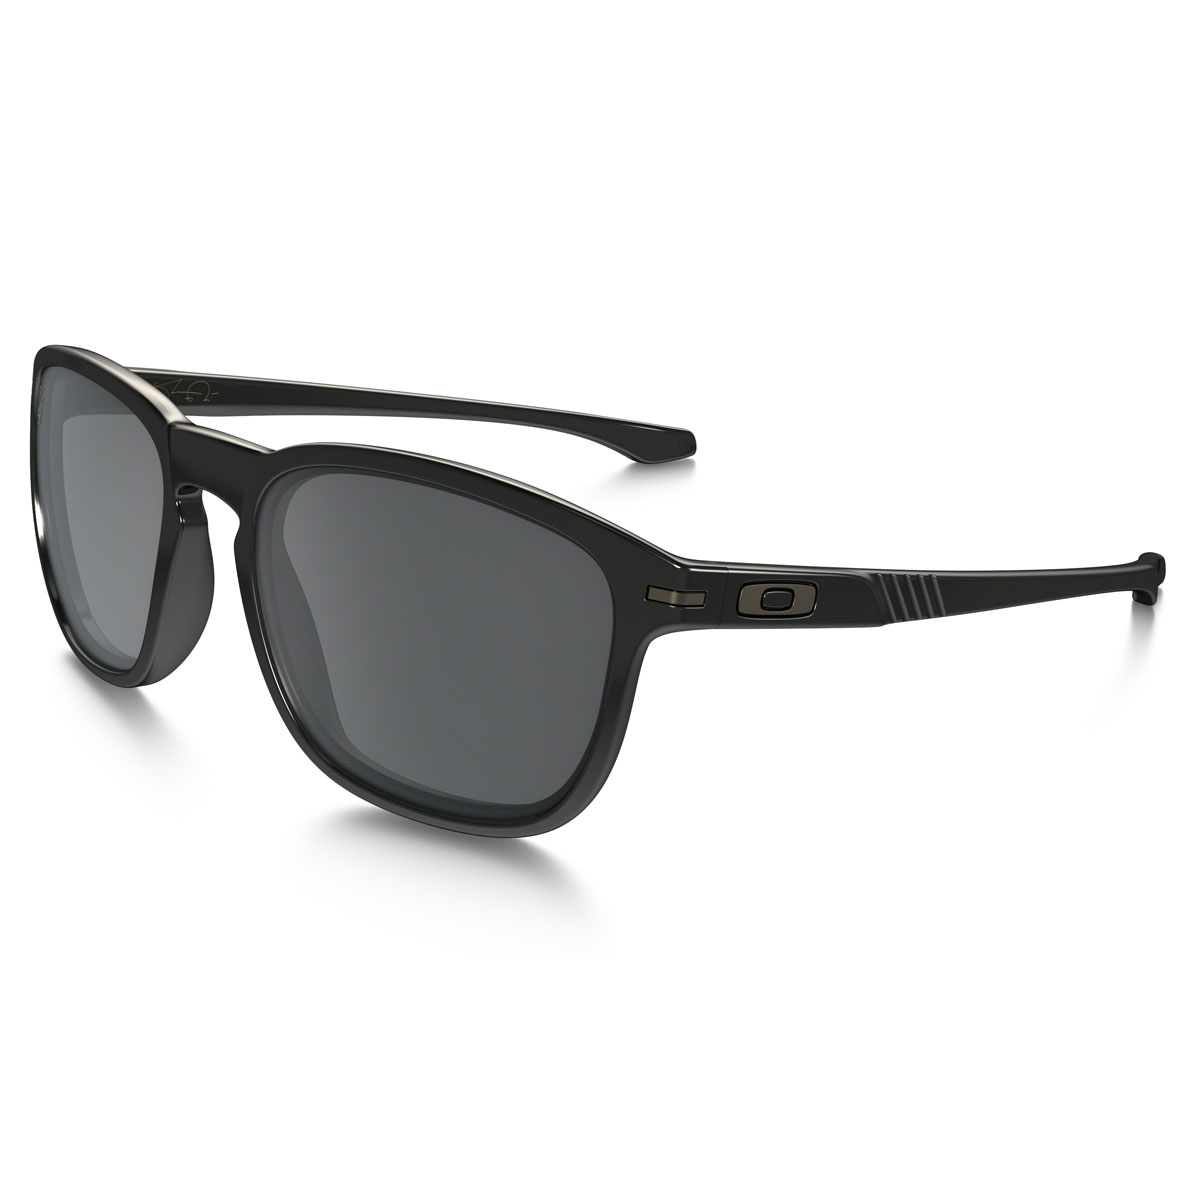 cce3cfb96d6 Image of Oakley Enduro Shaun White Collection Sunglasses - Black Ink Frame  Black Iridium Lens